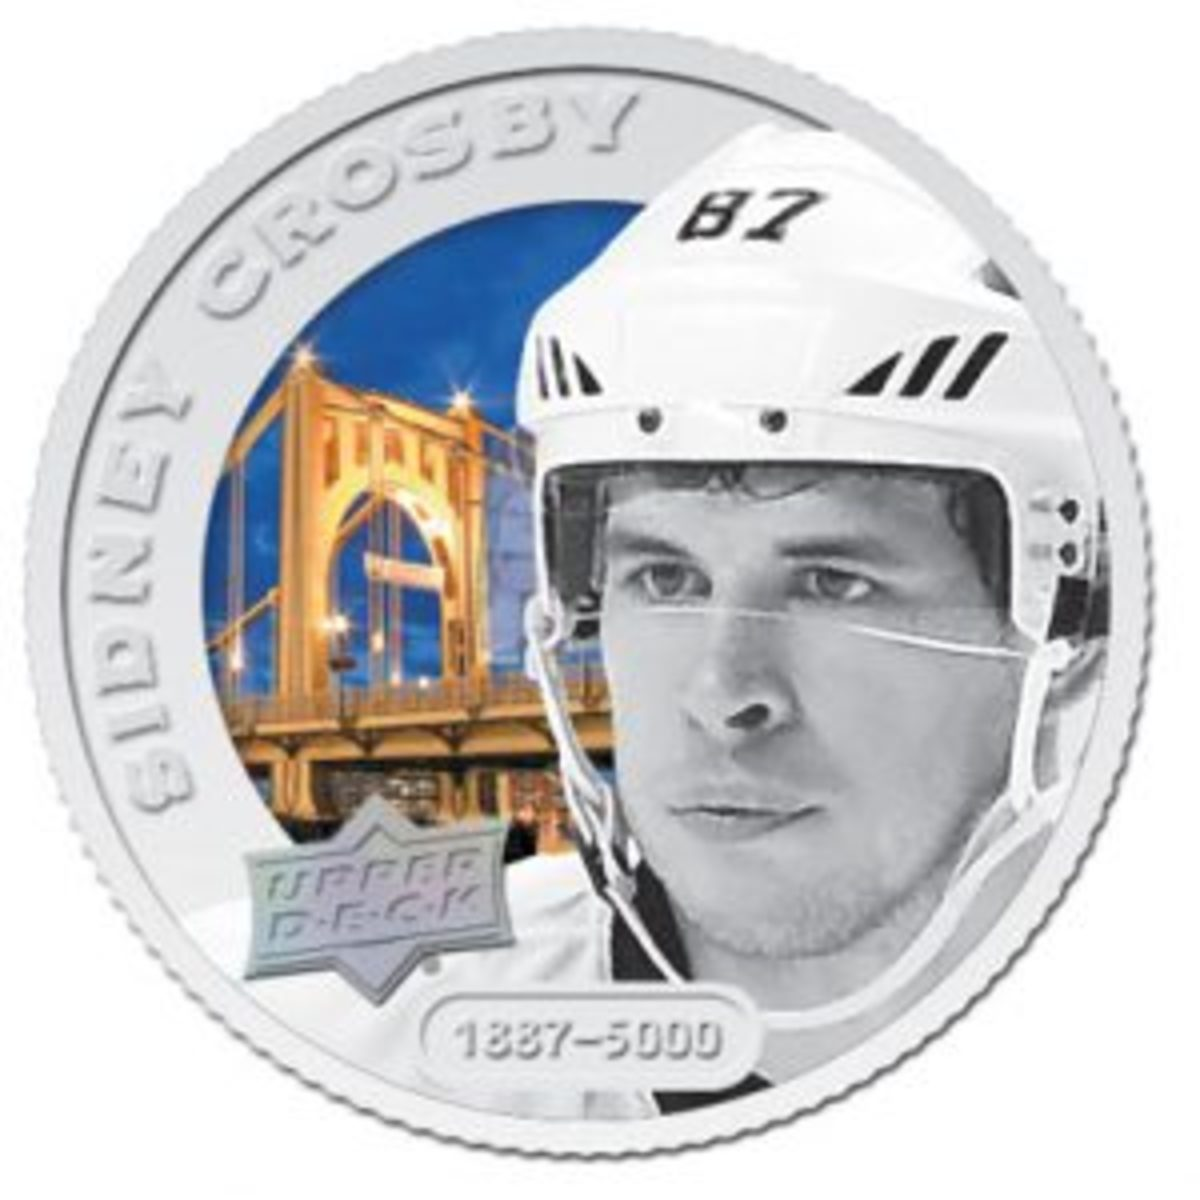 The Grandeur Hockey Coin Collection features silver, colored coins that are numbered to 5,000 for each player. These are the most common coins in the collection.